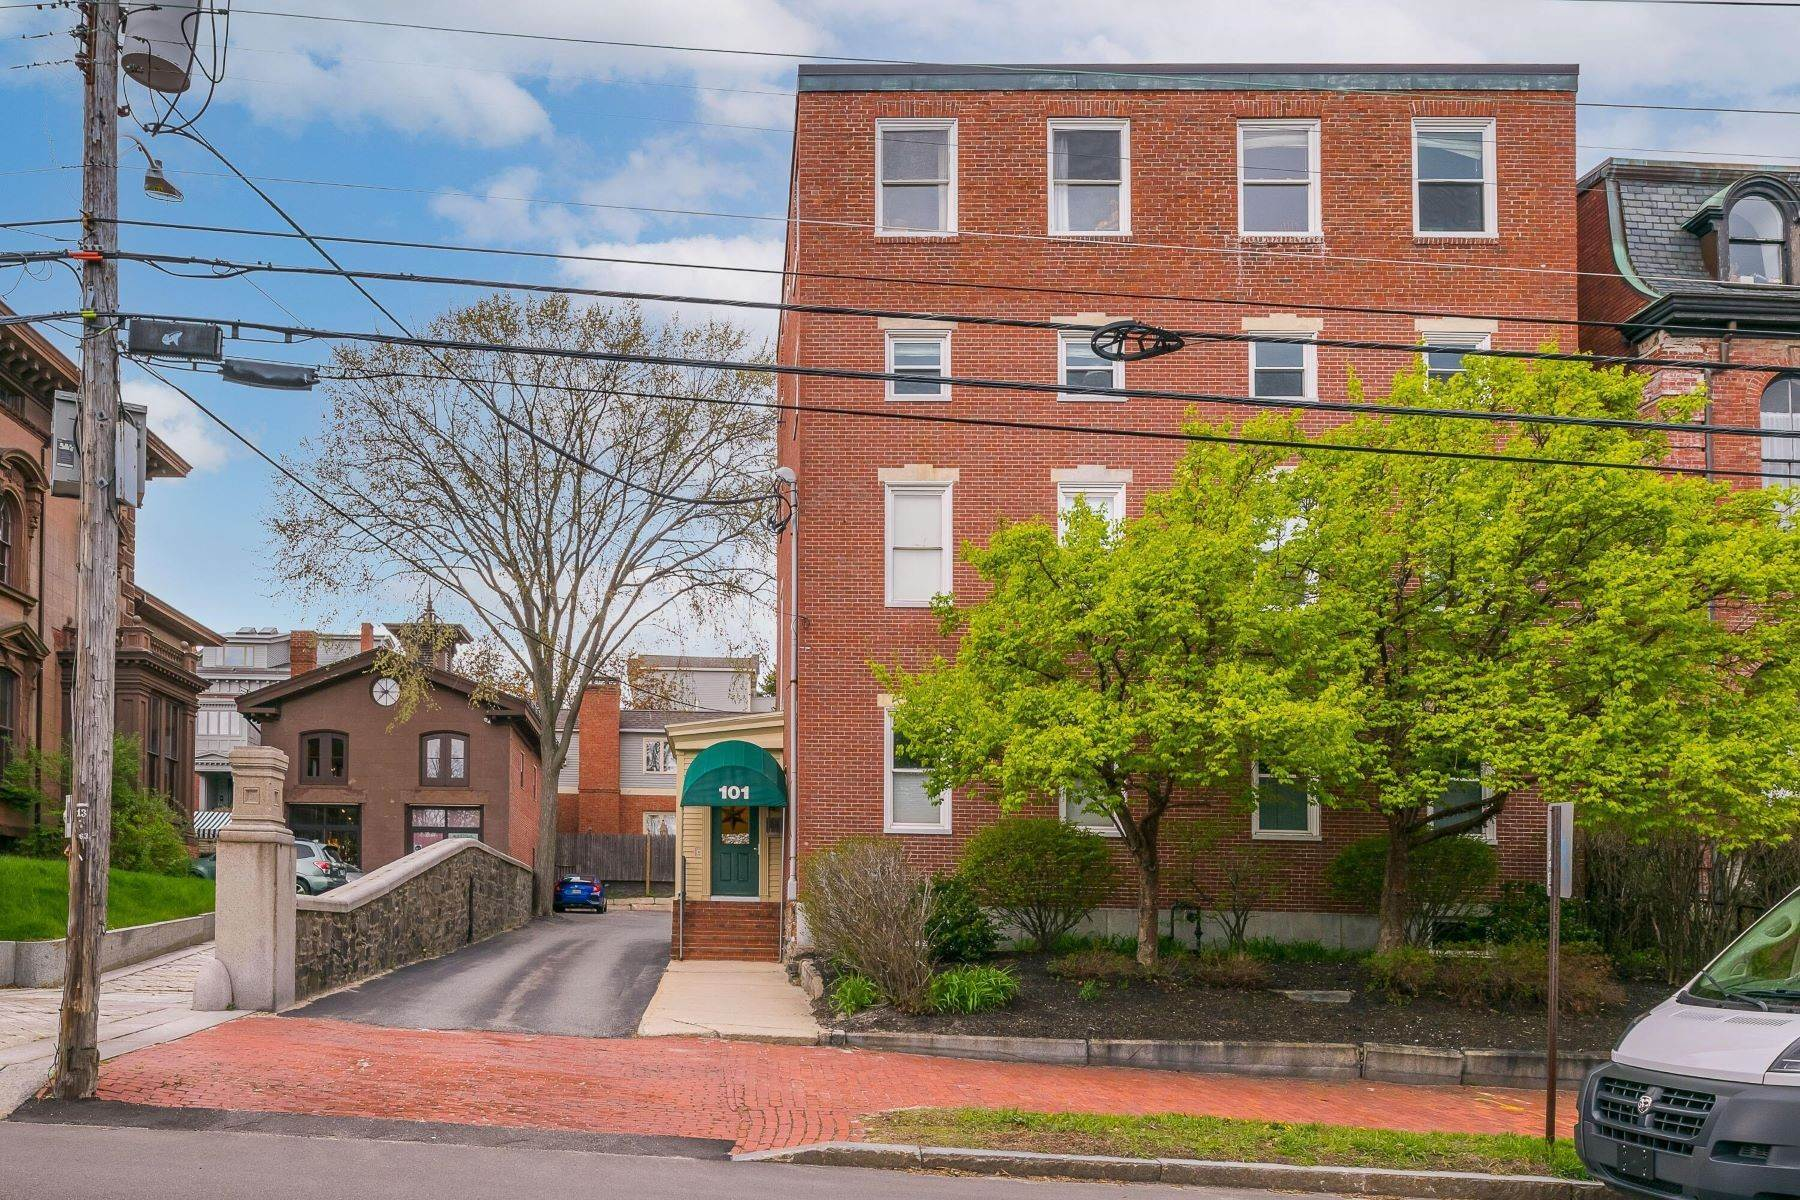 Property for Sale at 101 Danforth Street, 2, Portland, ME 04101